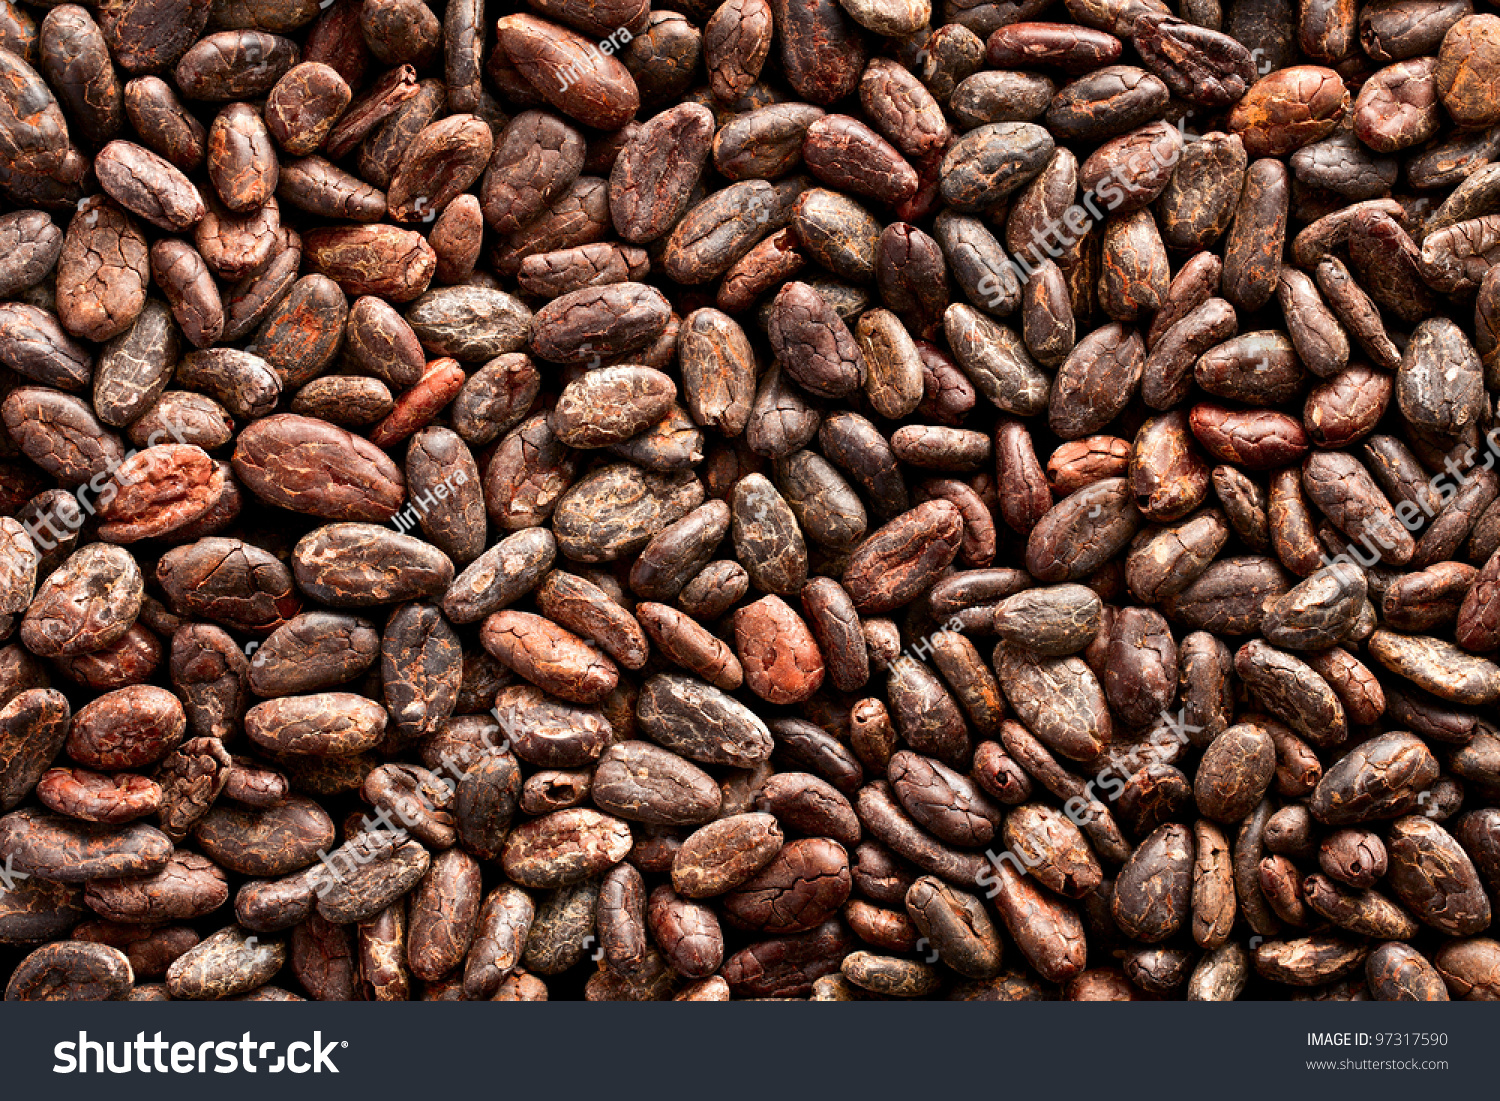 Pattern Cocoa Beans Background Stock Photo 97317590 - Shutterstock